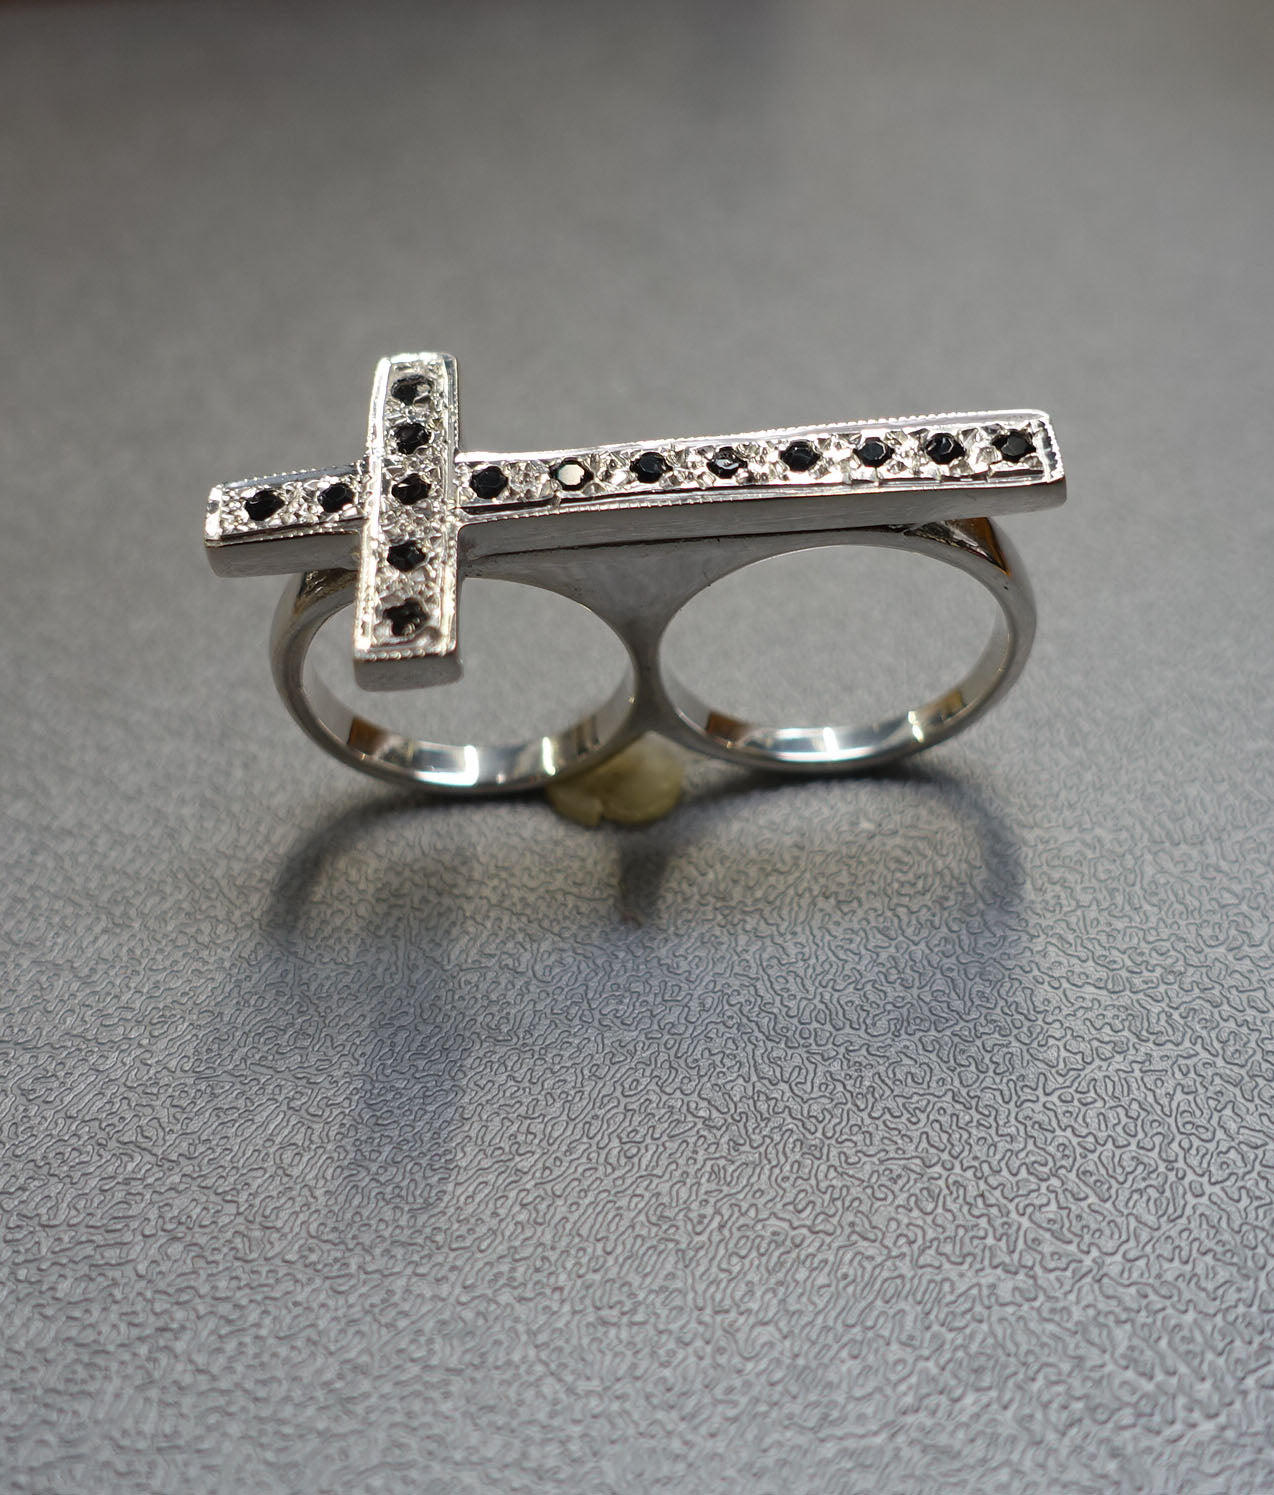 RING SILVER BLACK DIAMONDS CROSS TWO FINGERS